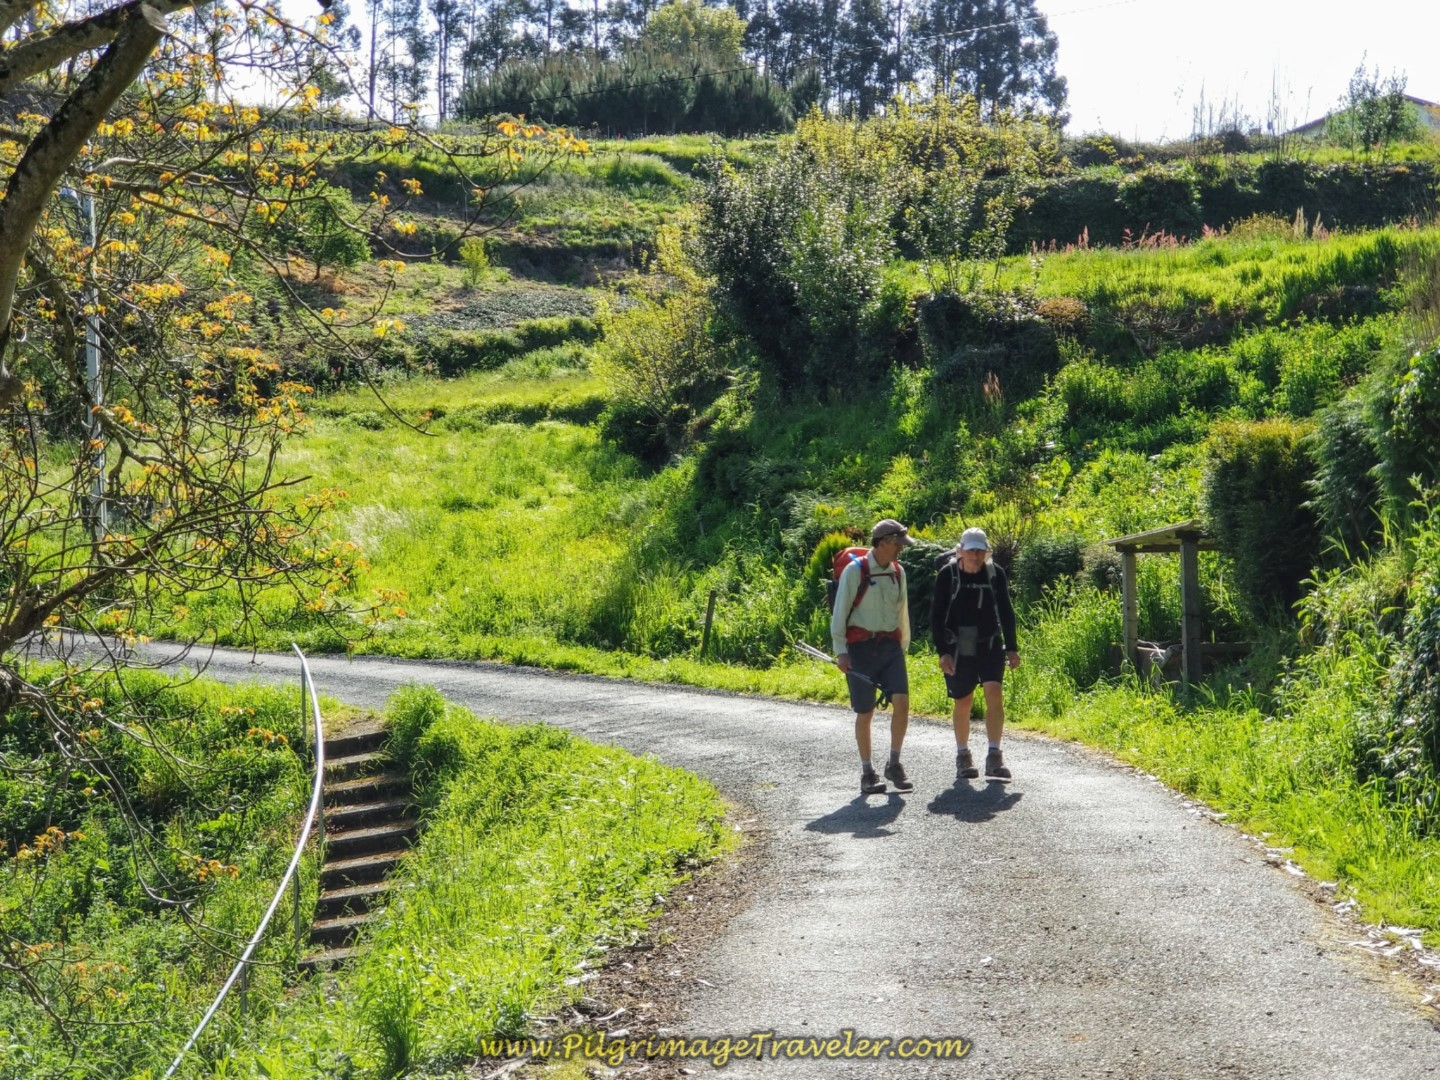 Rich and Rob on the Country Road by Spring in San Paio, Galicia, on day four of the English Way